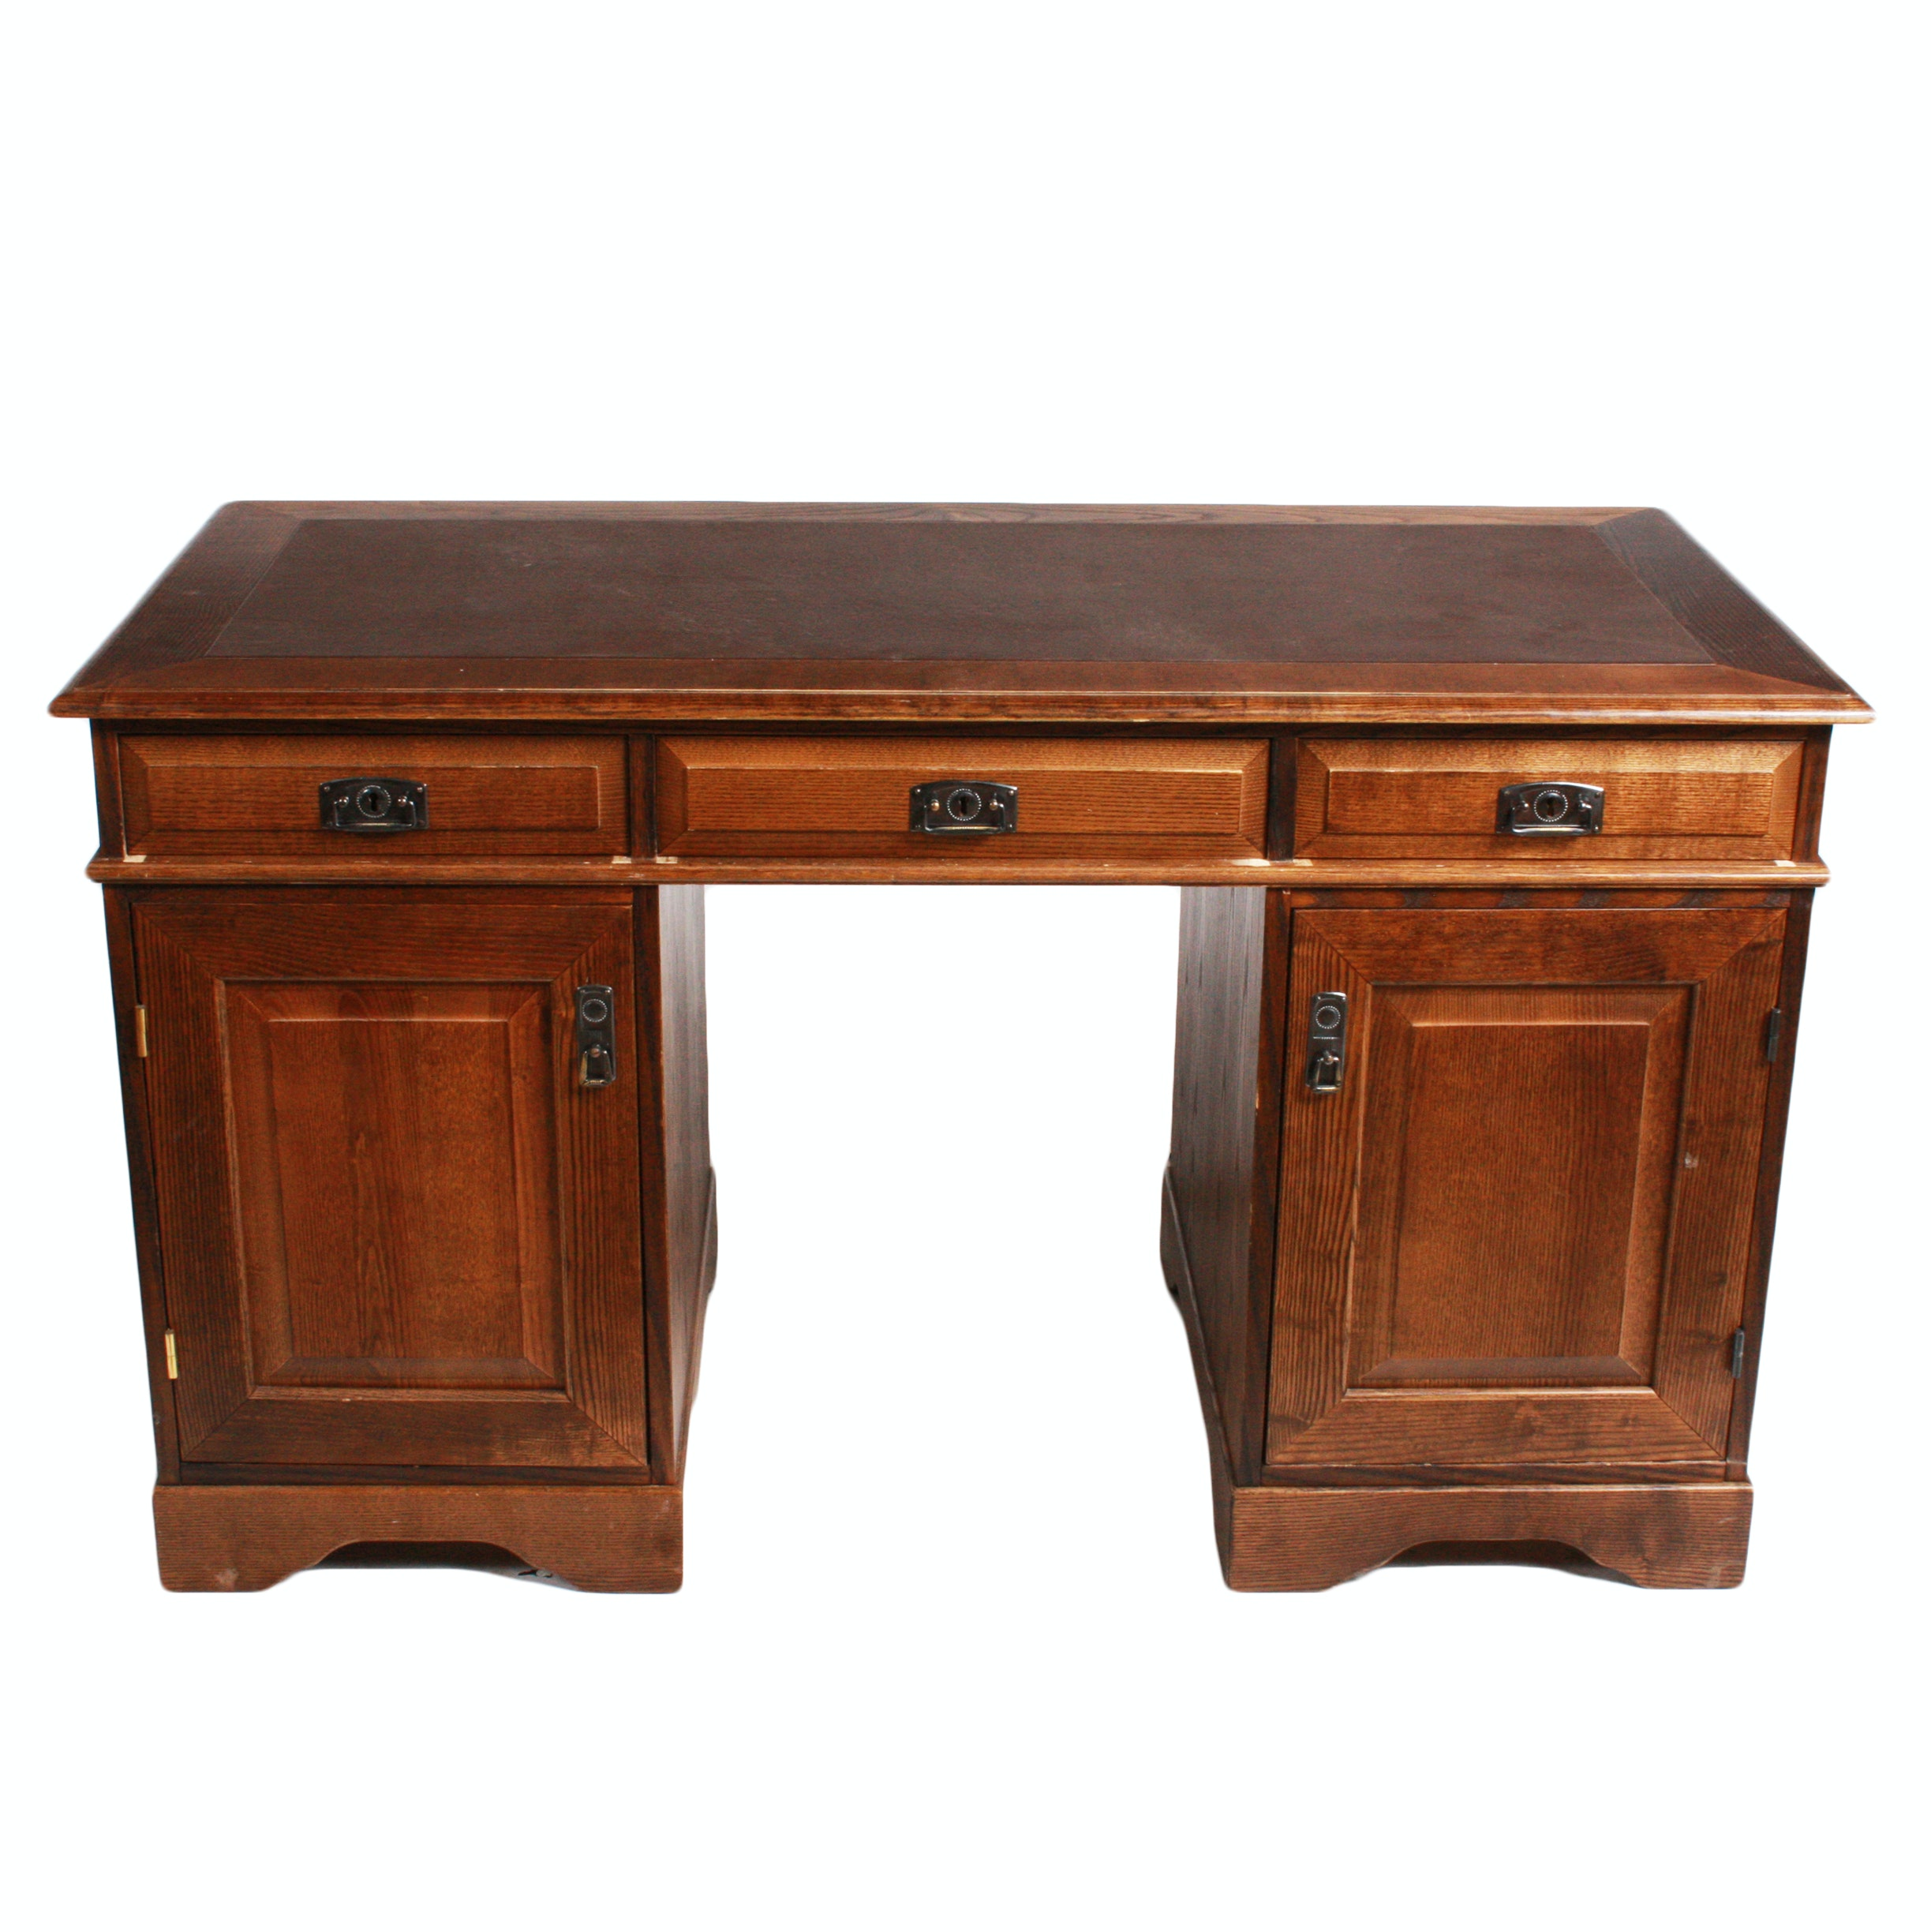 Vintage Double Pedestal Executive Desk with Leather Top